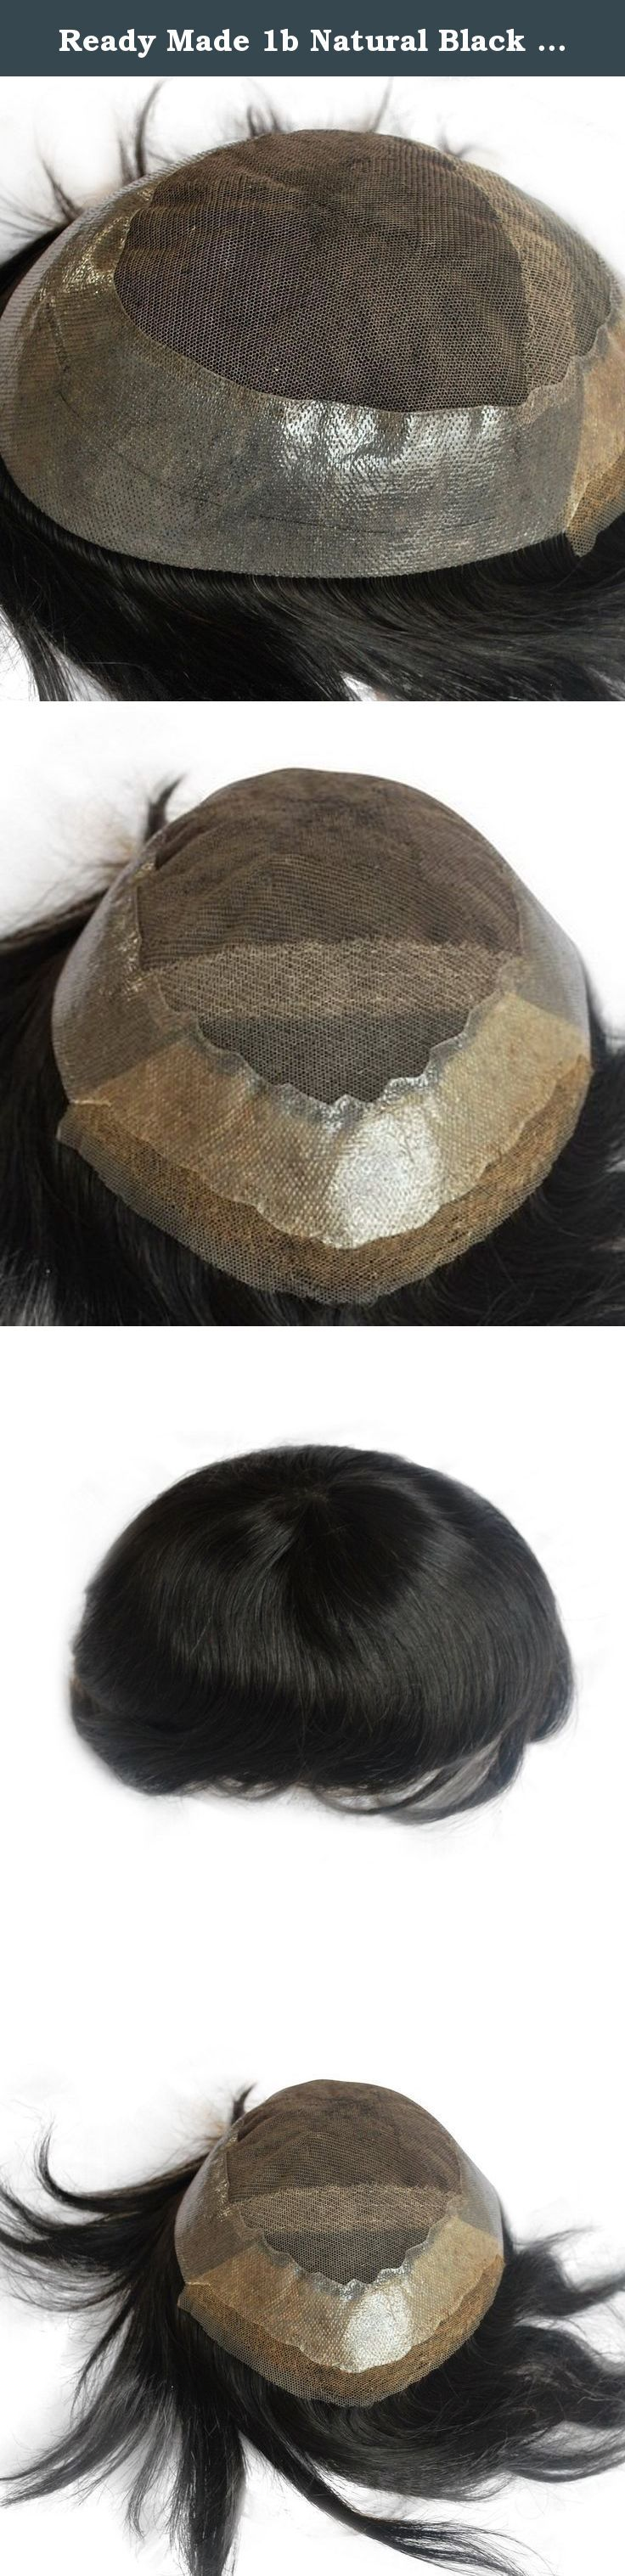 Ready Made 1b Natural Black Mens Toupee Hair Replacement Human Hair Hairpiece Pu Around. ready made toupee for men Natural black #1B hair color, which can be called darkest brown color too. base size is 10x7.5inch, can be cut to 9x7inch or 8.5x6.5inch hair length is 6inch; free style, body wave, 130% medium density.